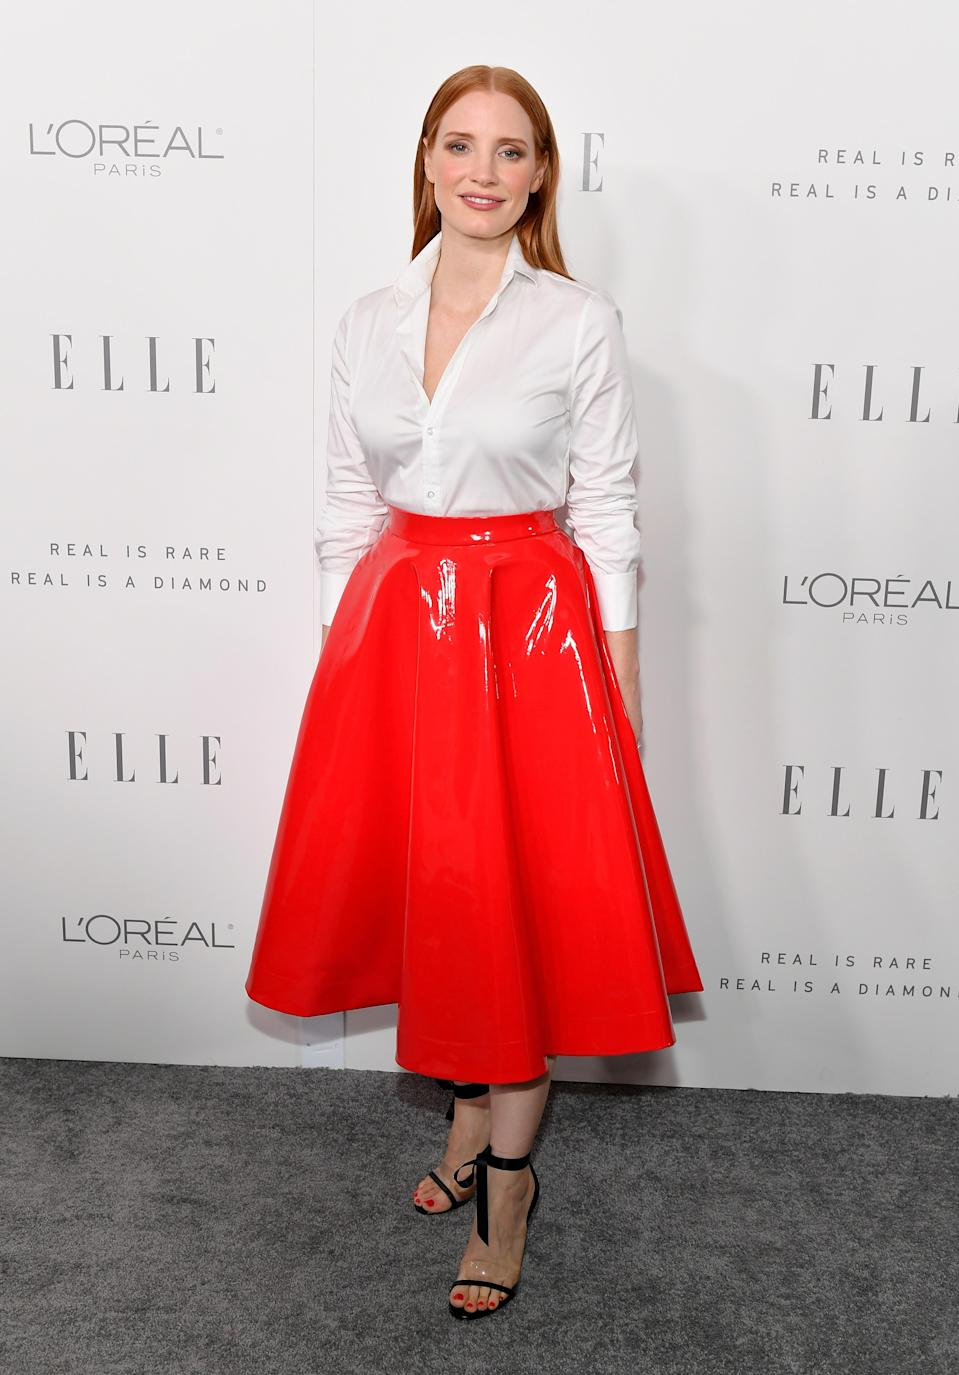 Jessica Chastain attends the <em>Elle</em> Women in Hollywood Awards in L.A. on Oct. 16, 2017. (Photo: Getty Images)